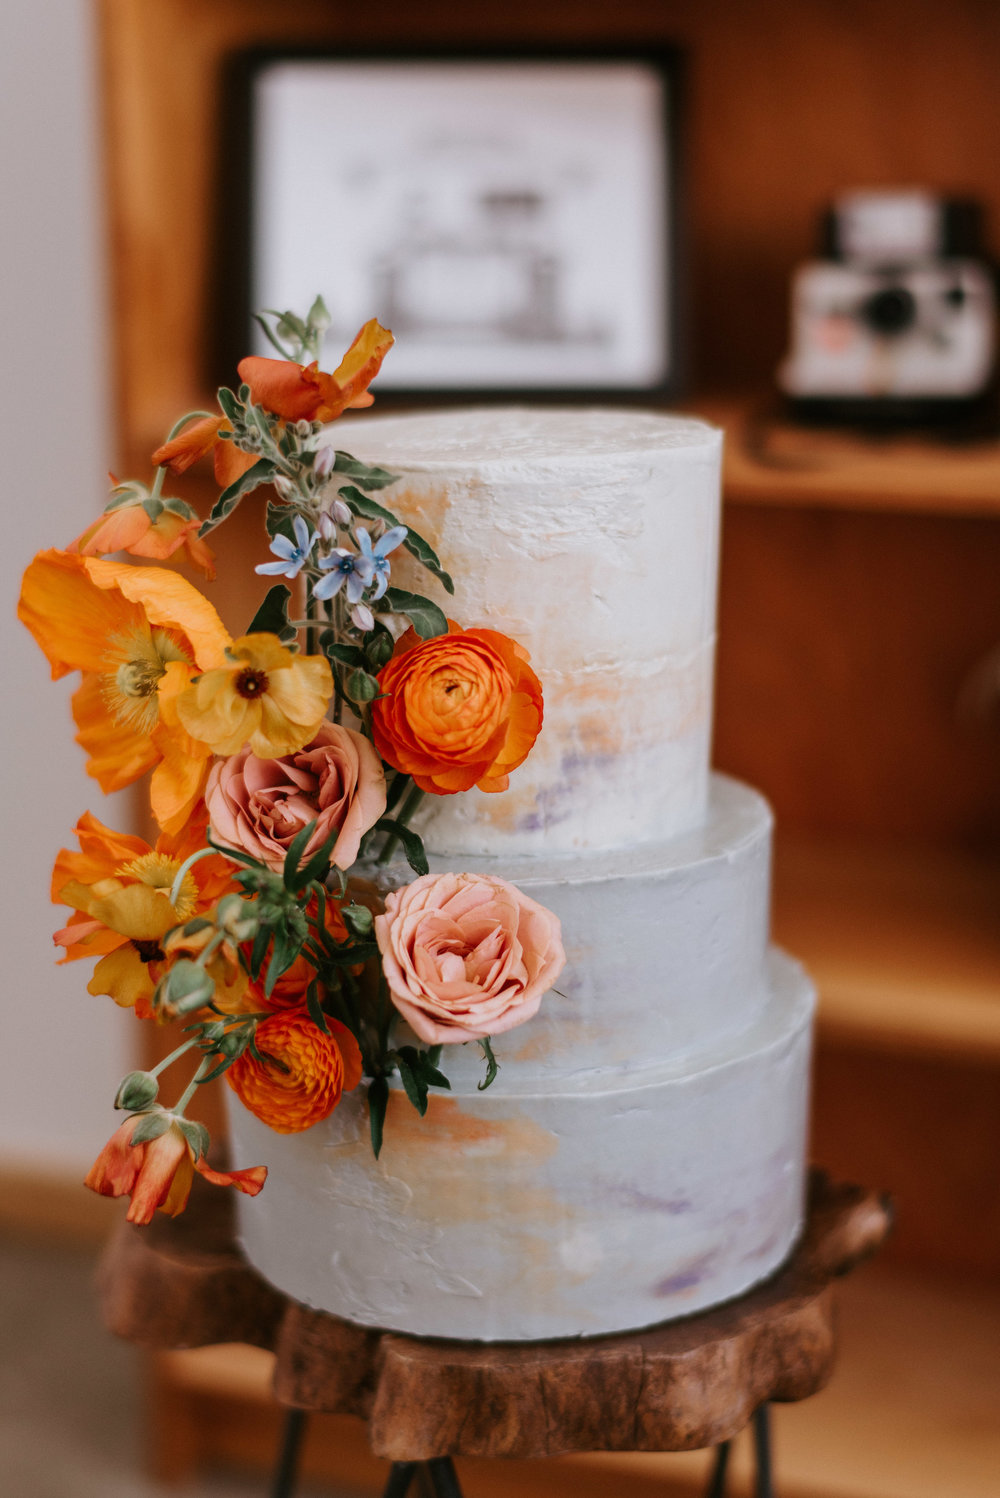 A bright and elegant 3 tiered cake by Amalia Bakery Detroit.